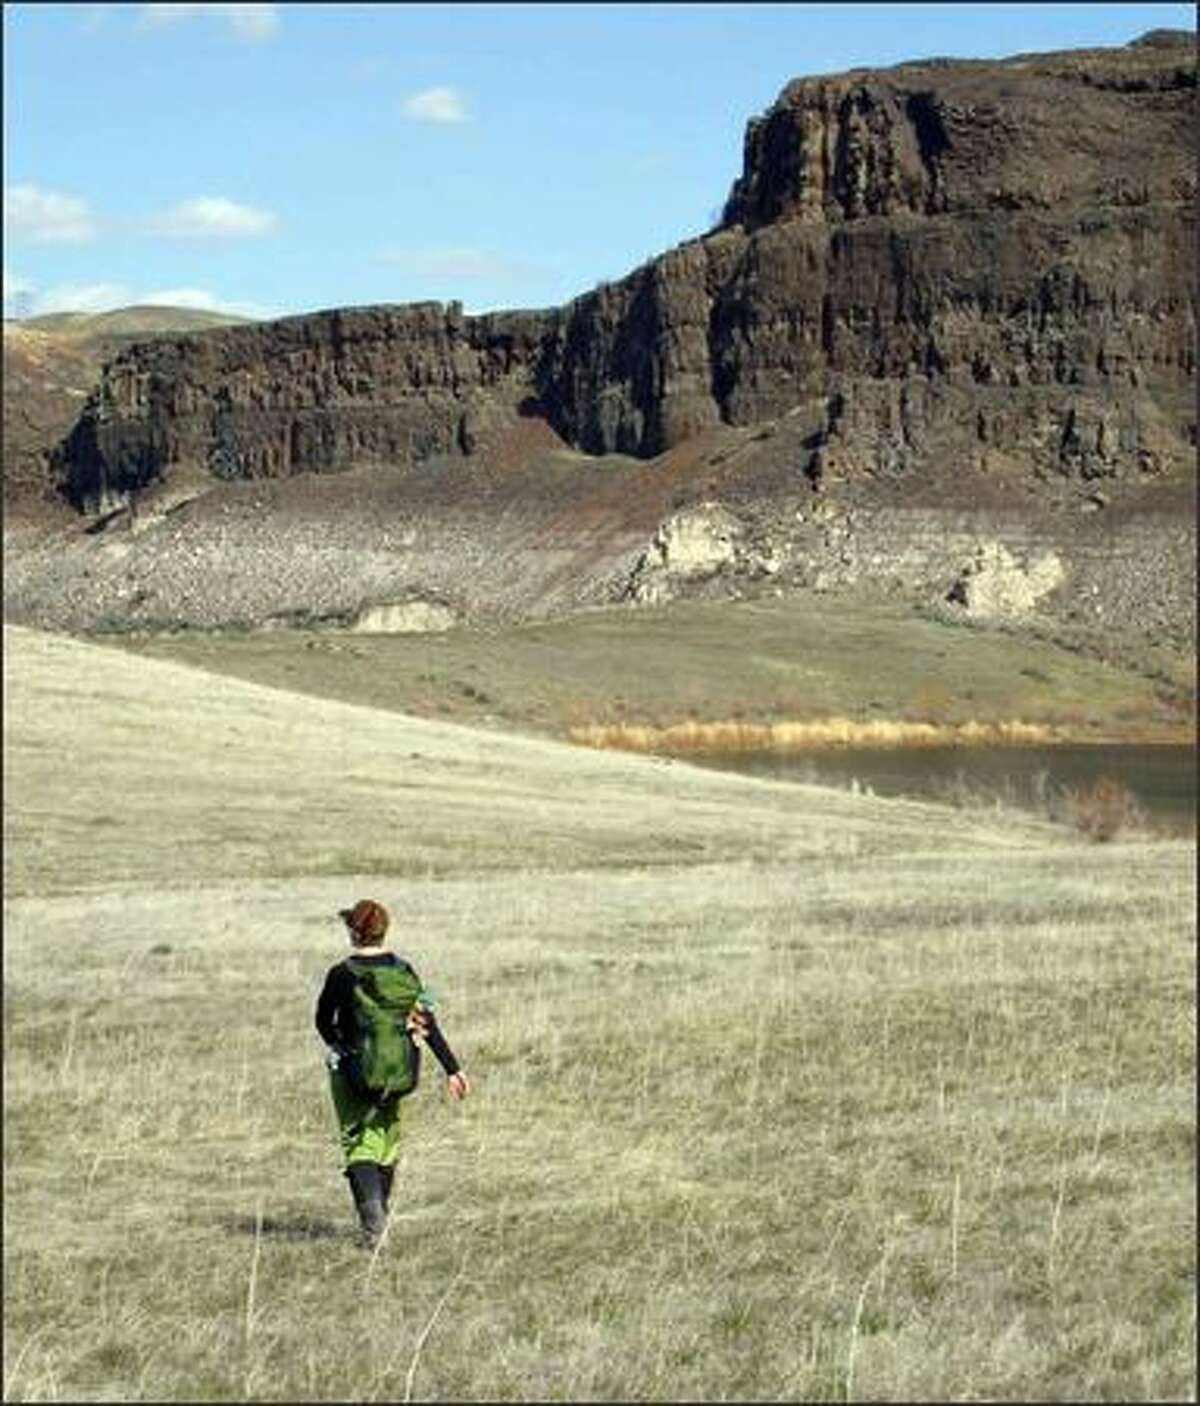 The open country near Ancient Lakes in Eastern Washington made for a perfect early spring escape from Seattle.